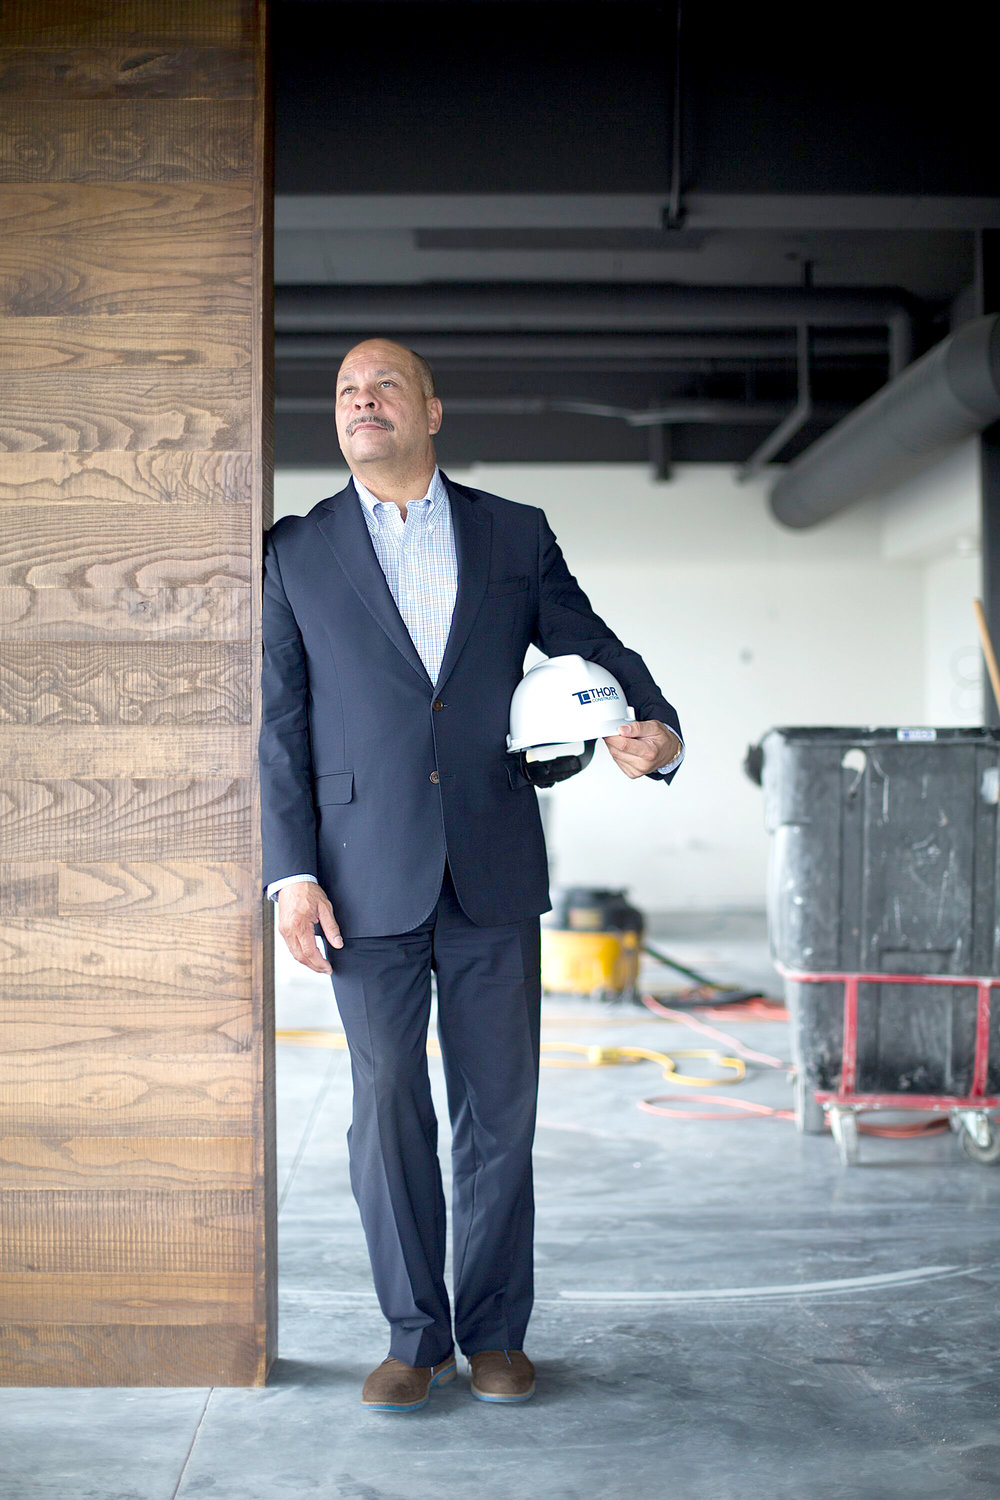 """Thor founder and board chair Richard Copeland stands in the Regional Acceleration Center just before it opened in the summer of 2018. """"Failure is something I face and run from every day. That's what has driven me to be successful: fear of failure,"""" he told  North News  then.  Photo by David Pierini"""